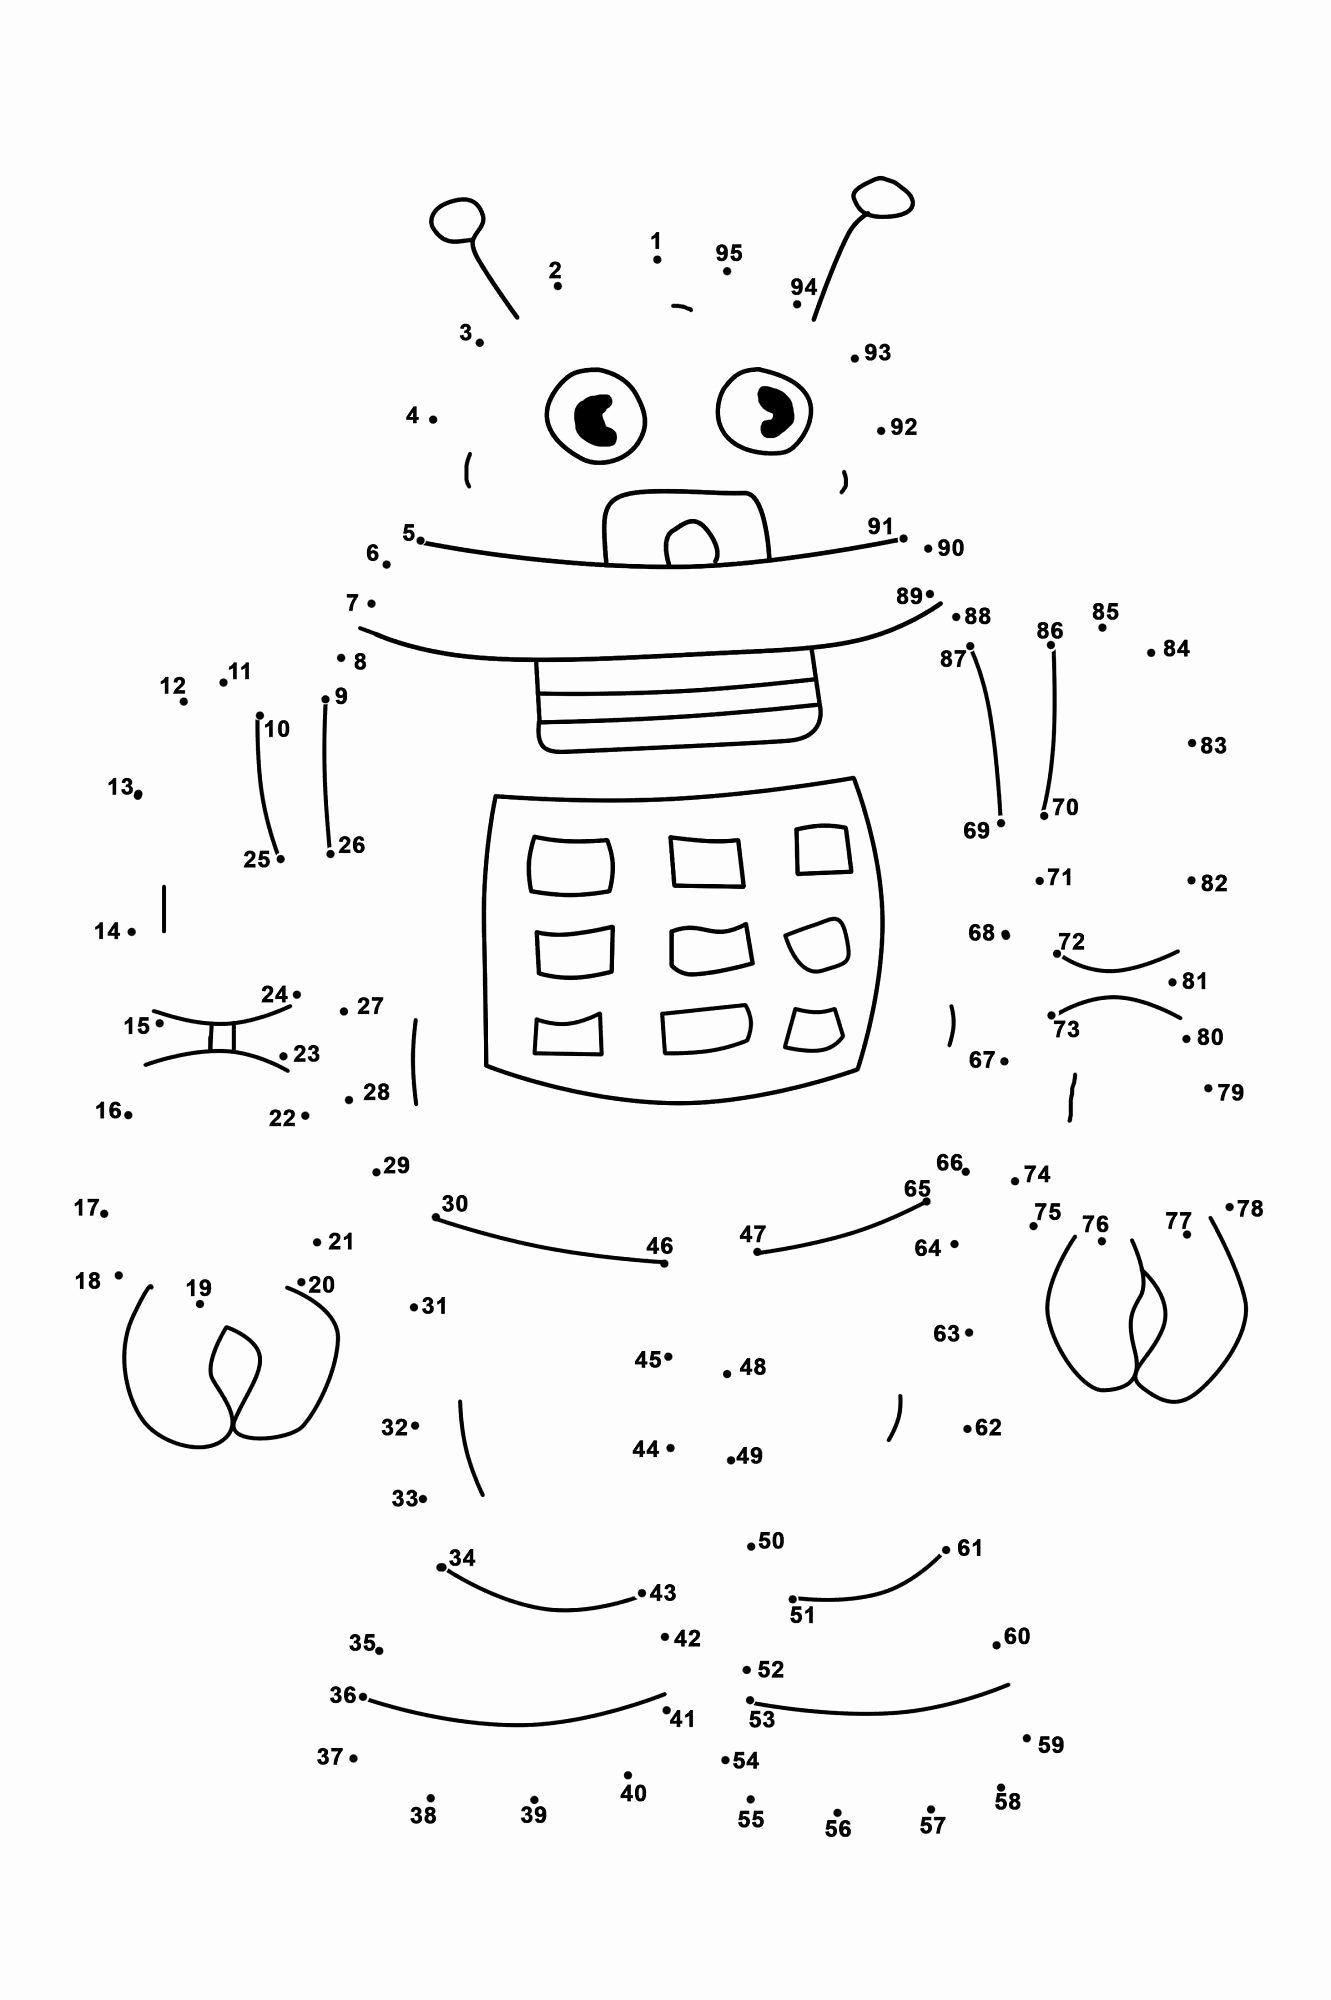 Connecting Dots Worksheets for Preschoolers Best Of Dot to Dots Worksheets for Kindergarten